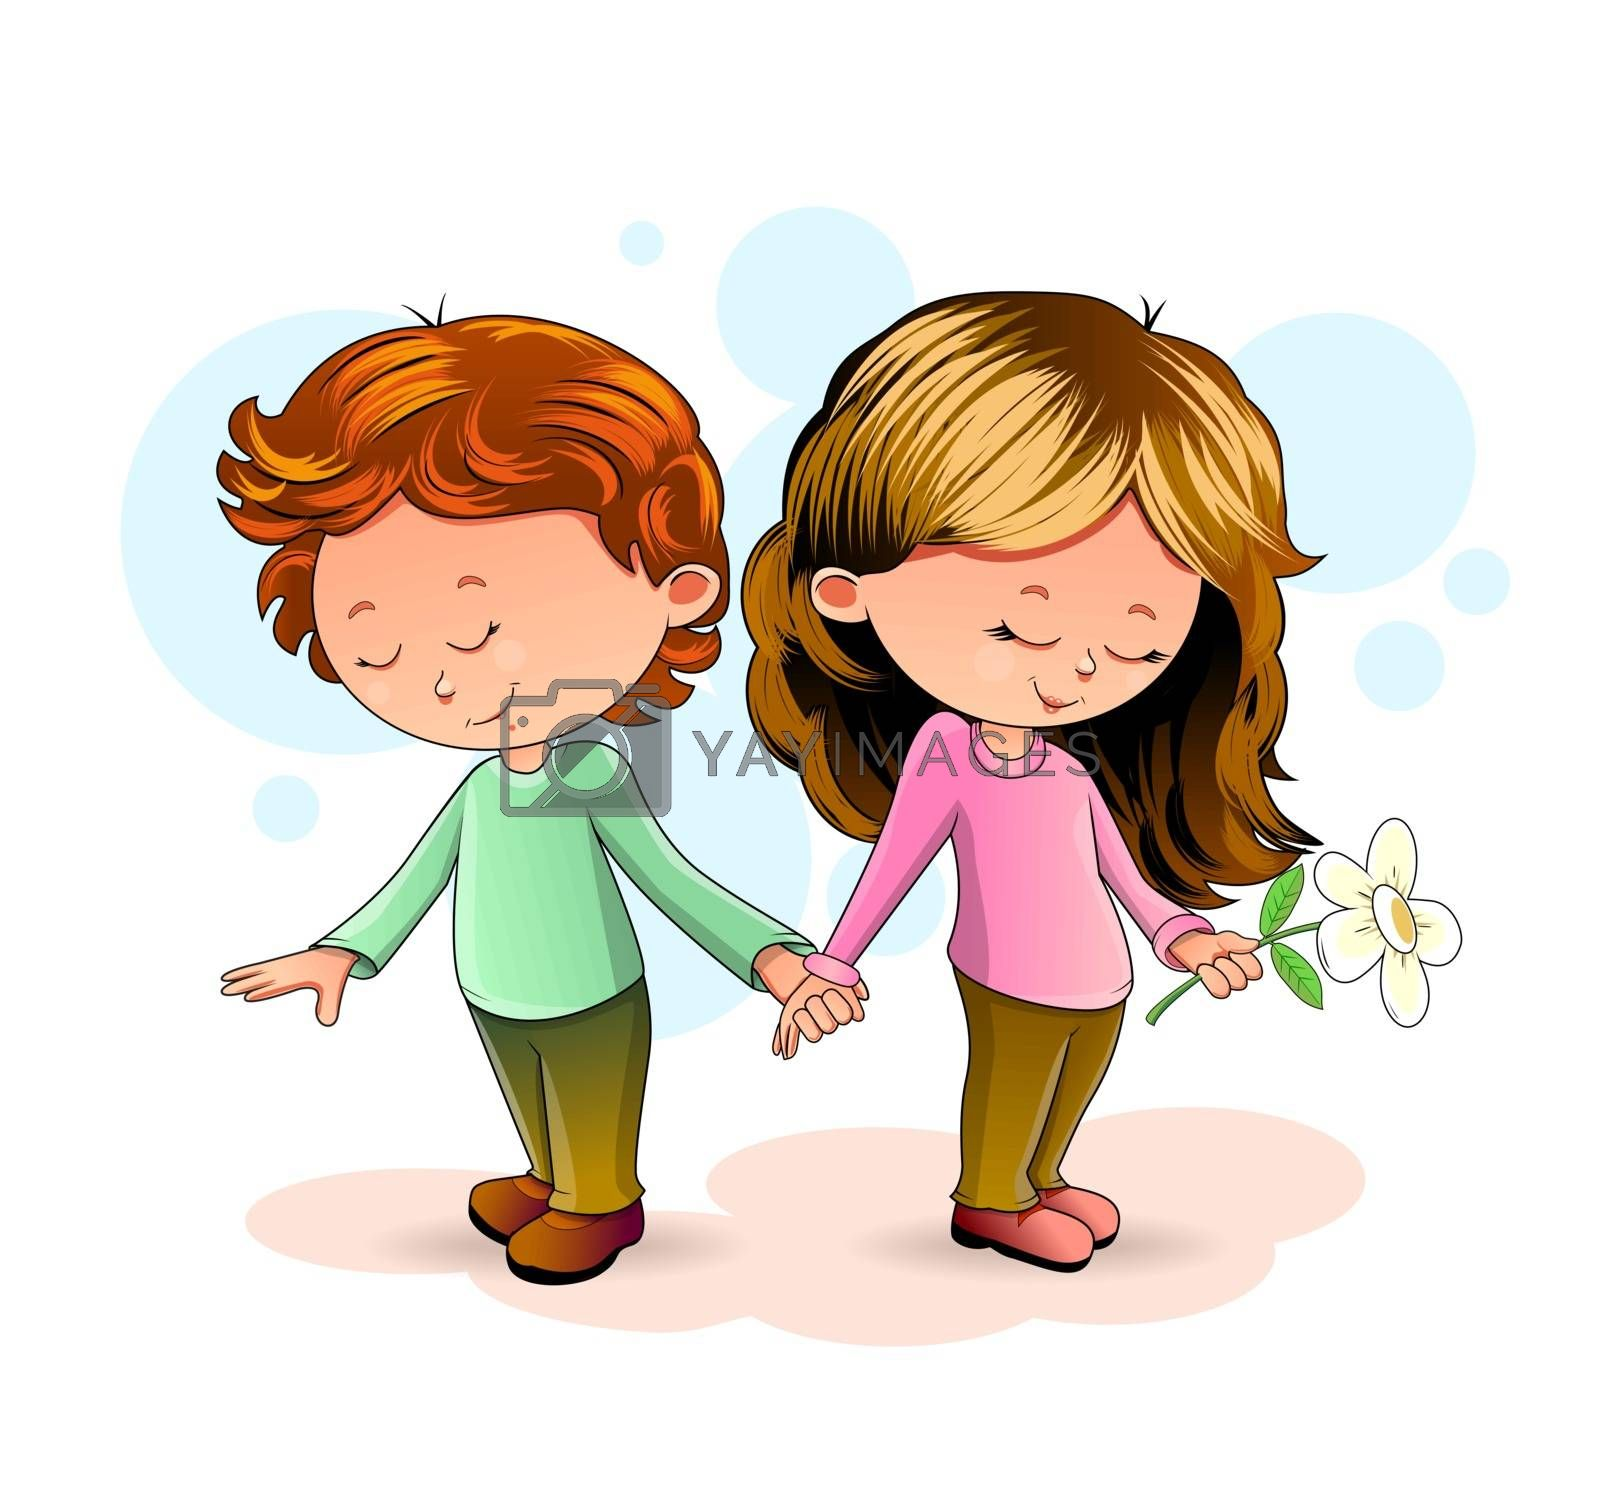 Girl and boy standing together and holding hands.